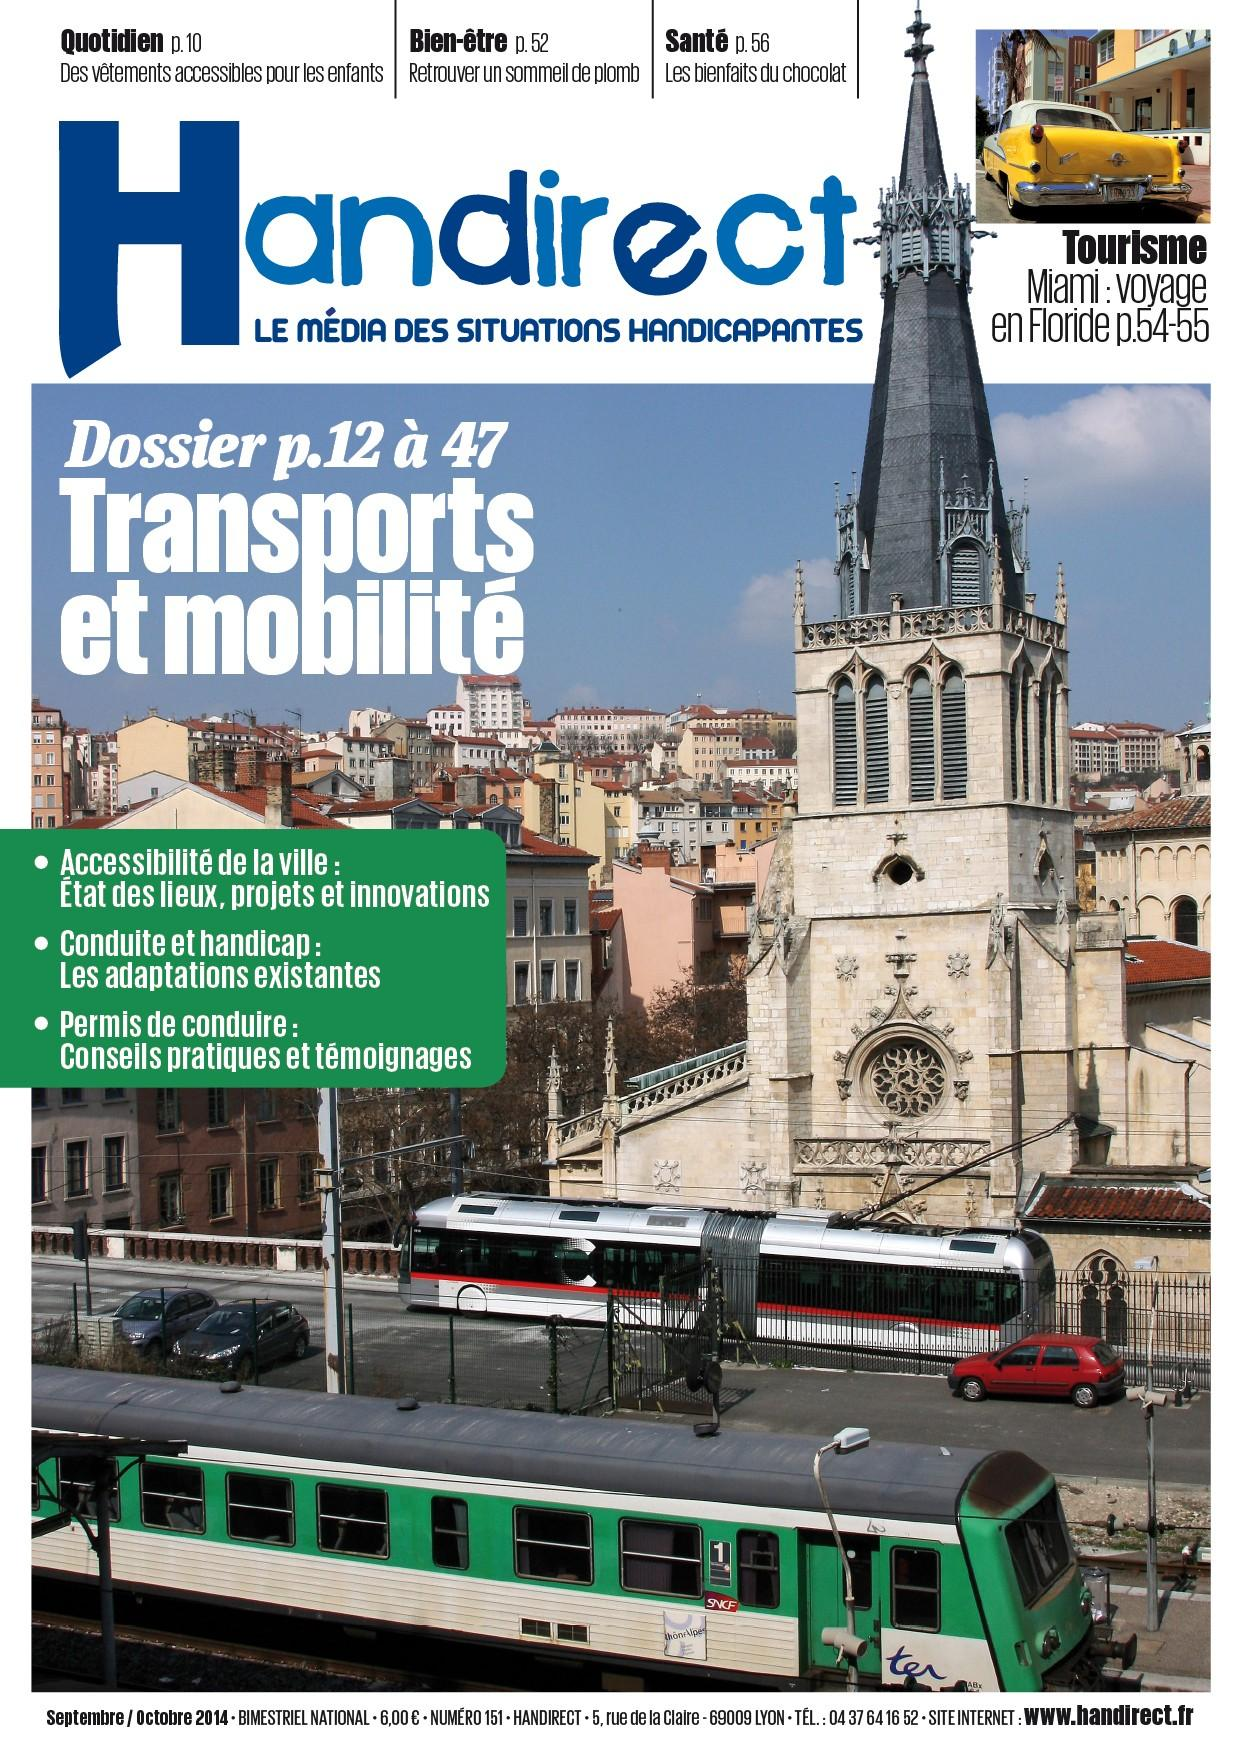 Handirect Couverture151